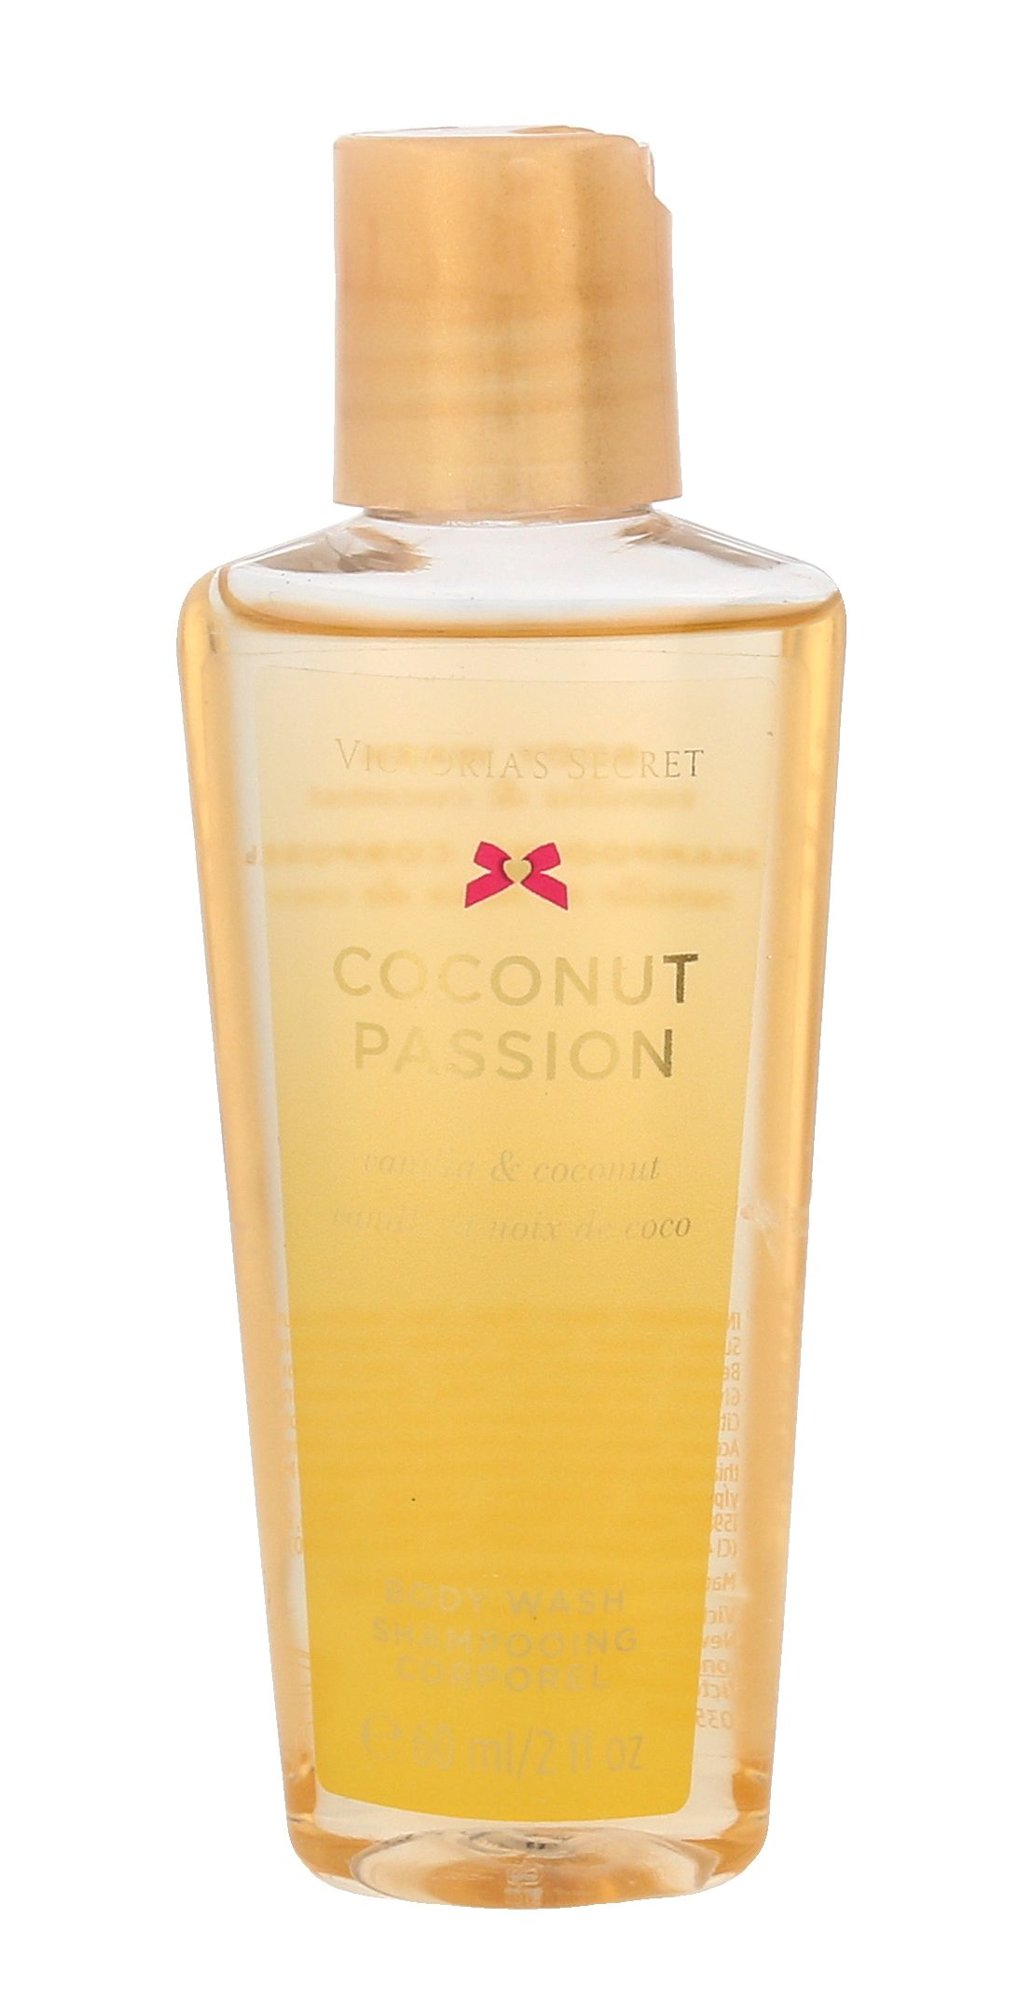 Victoria´s Secret Coconut Passion Shower gel 60ml